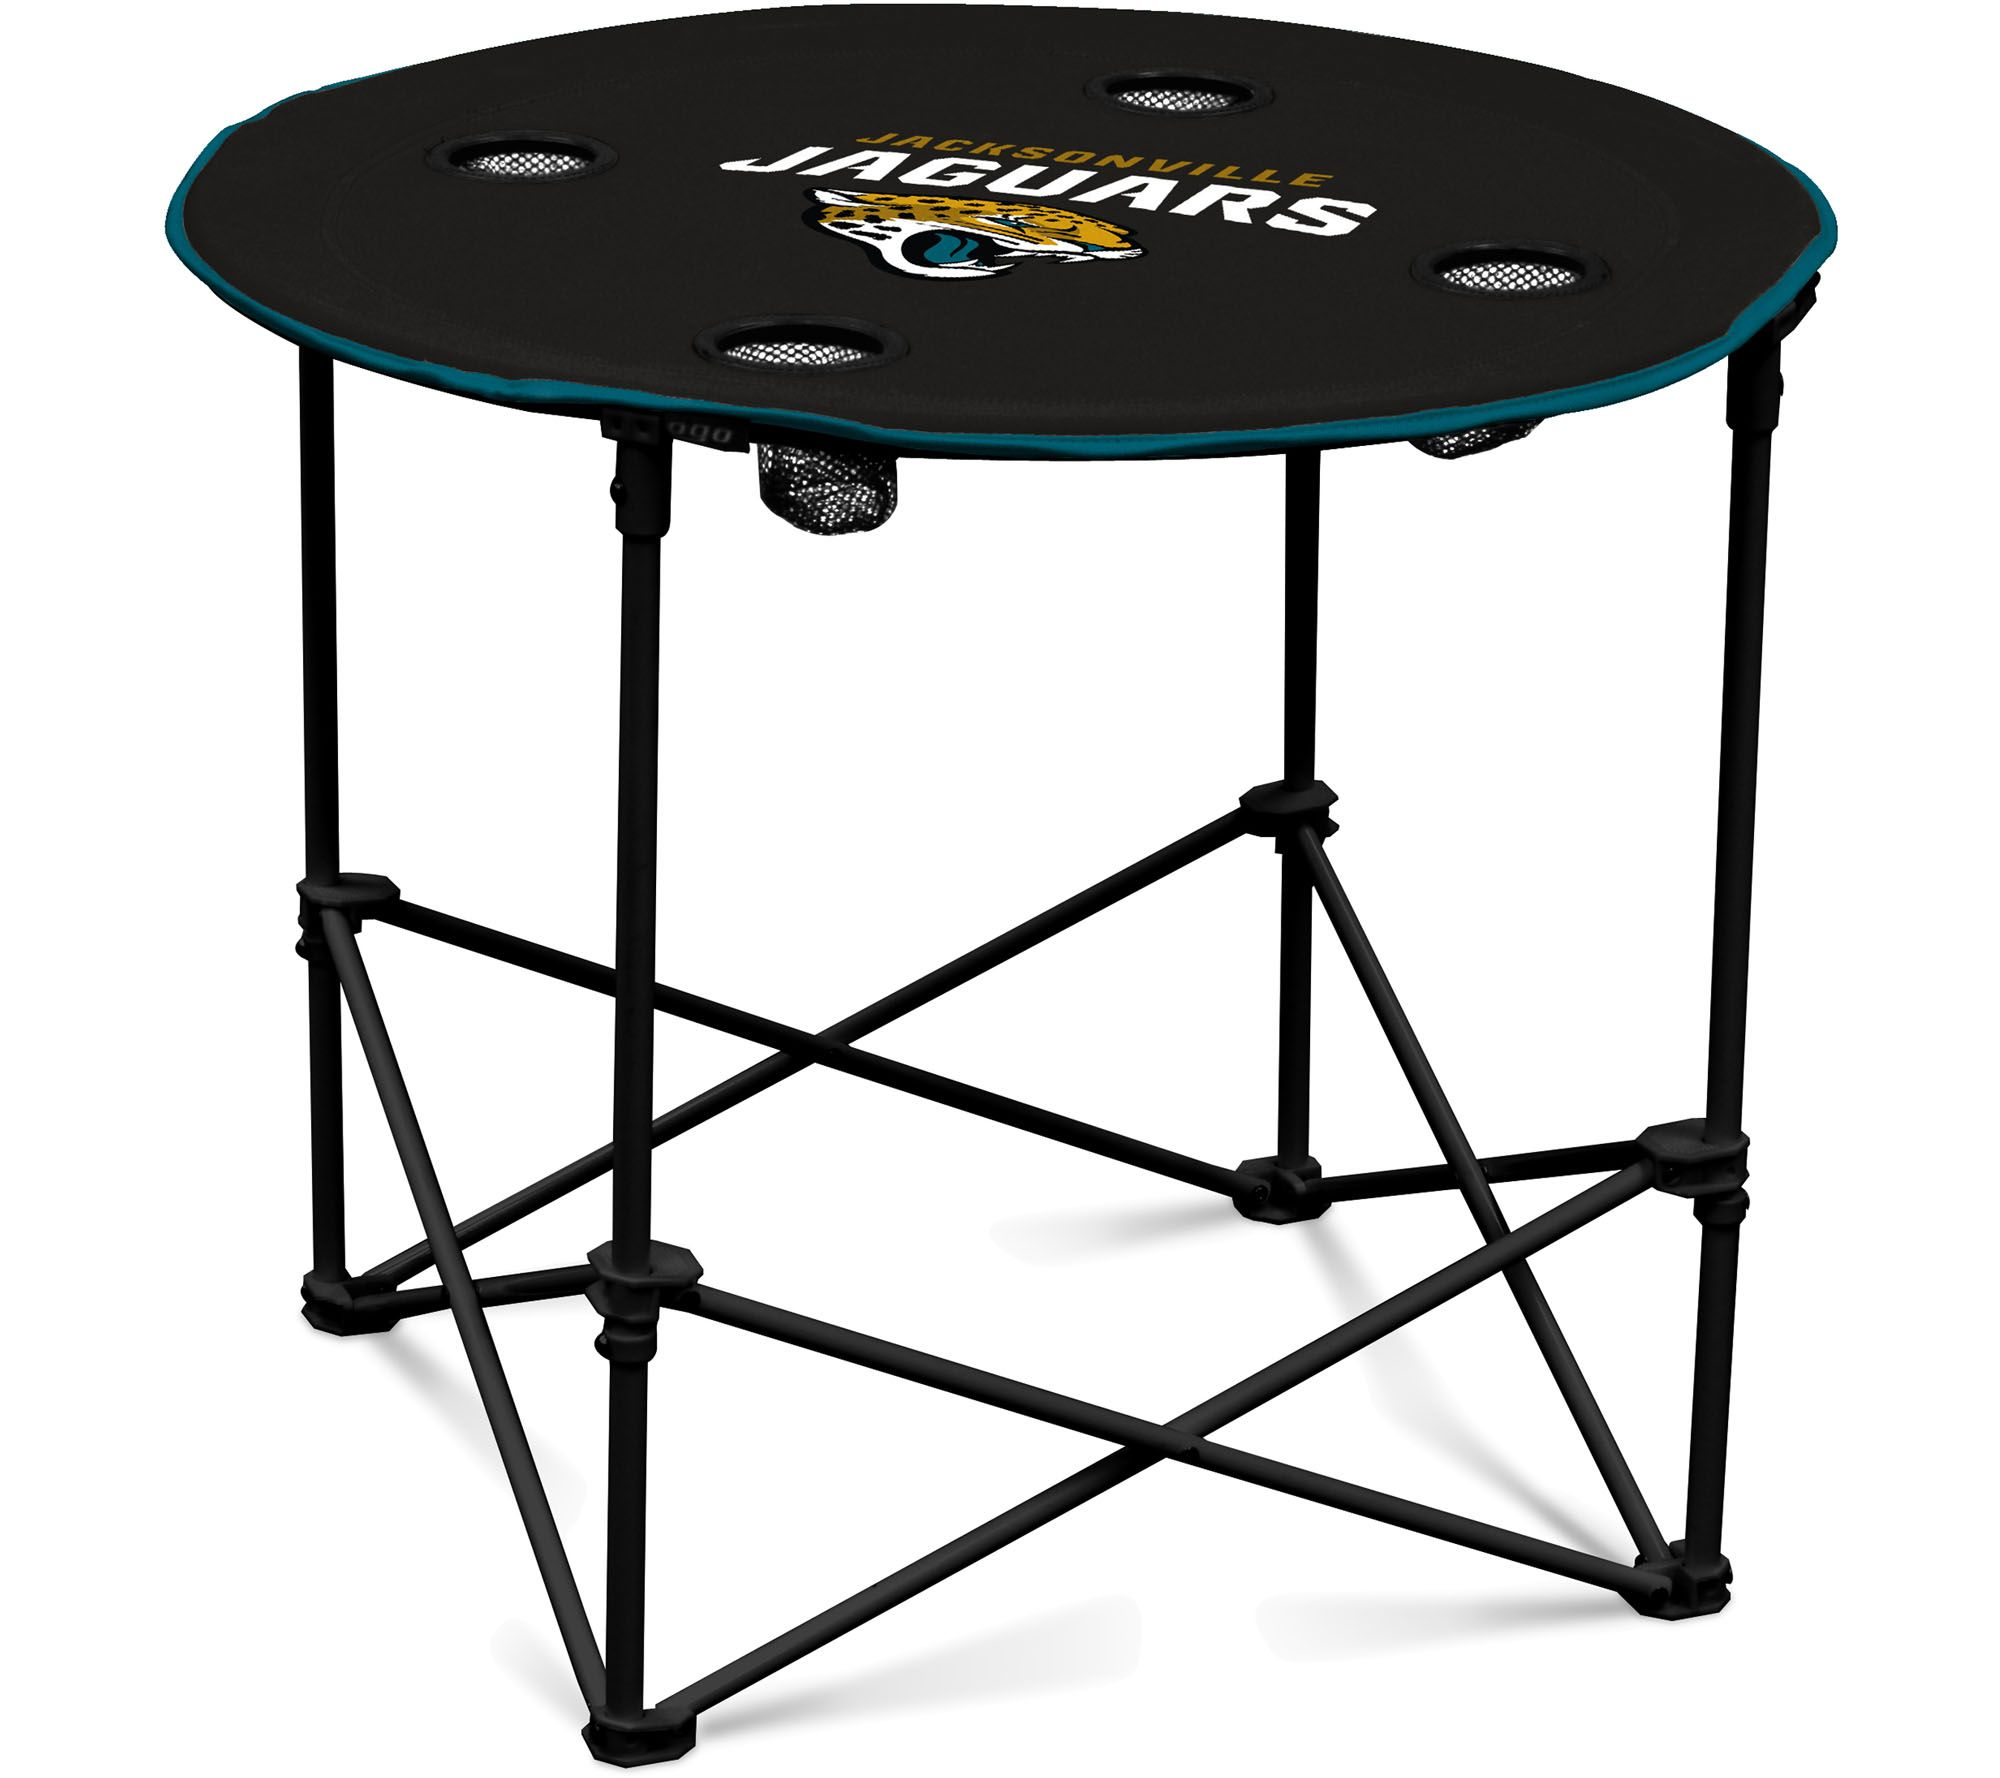 Collapsible round table with cup holders